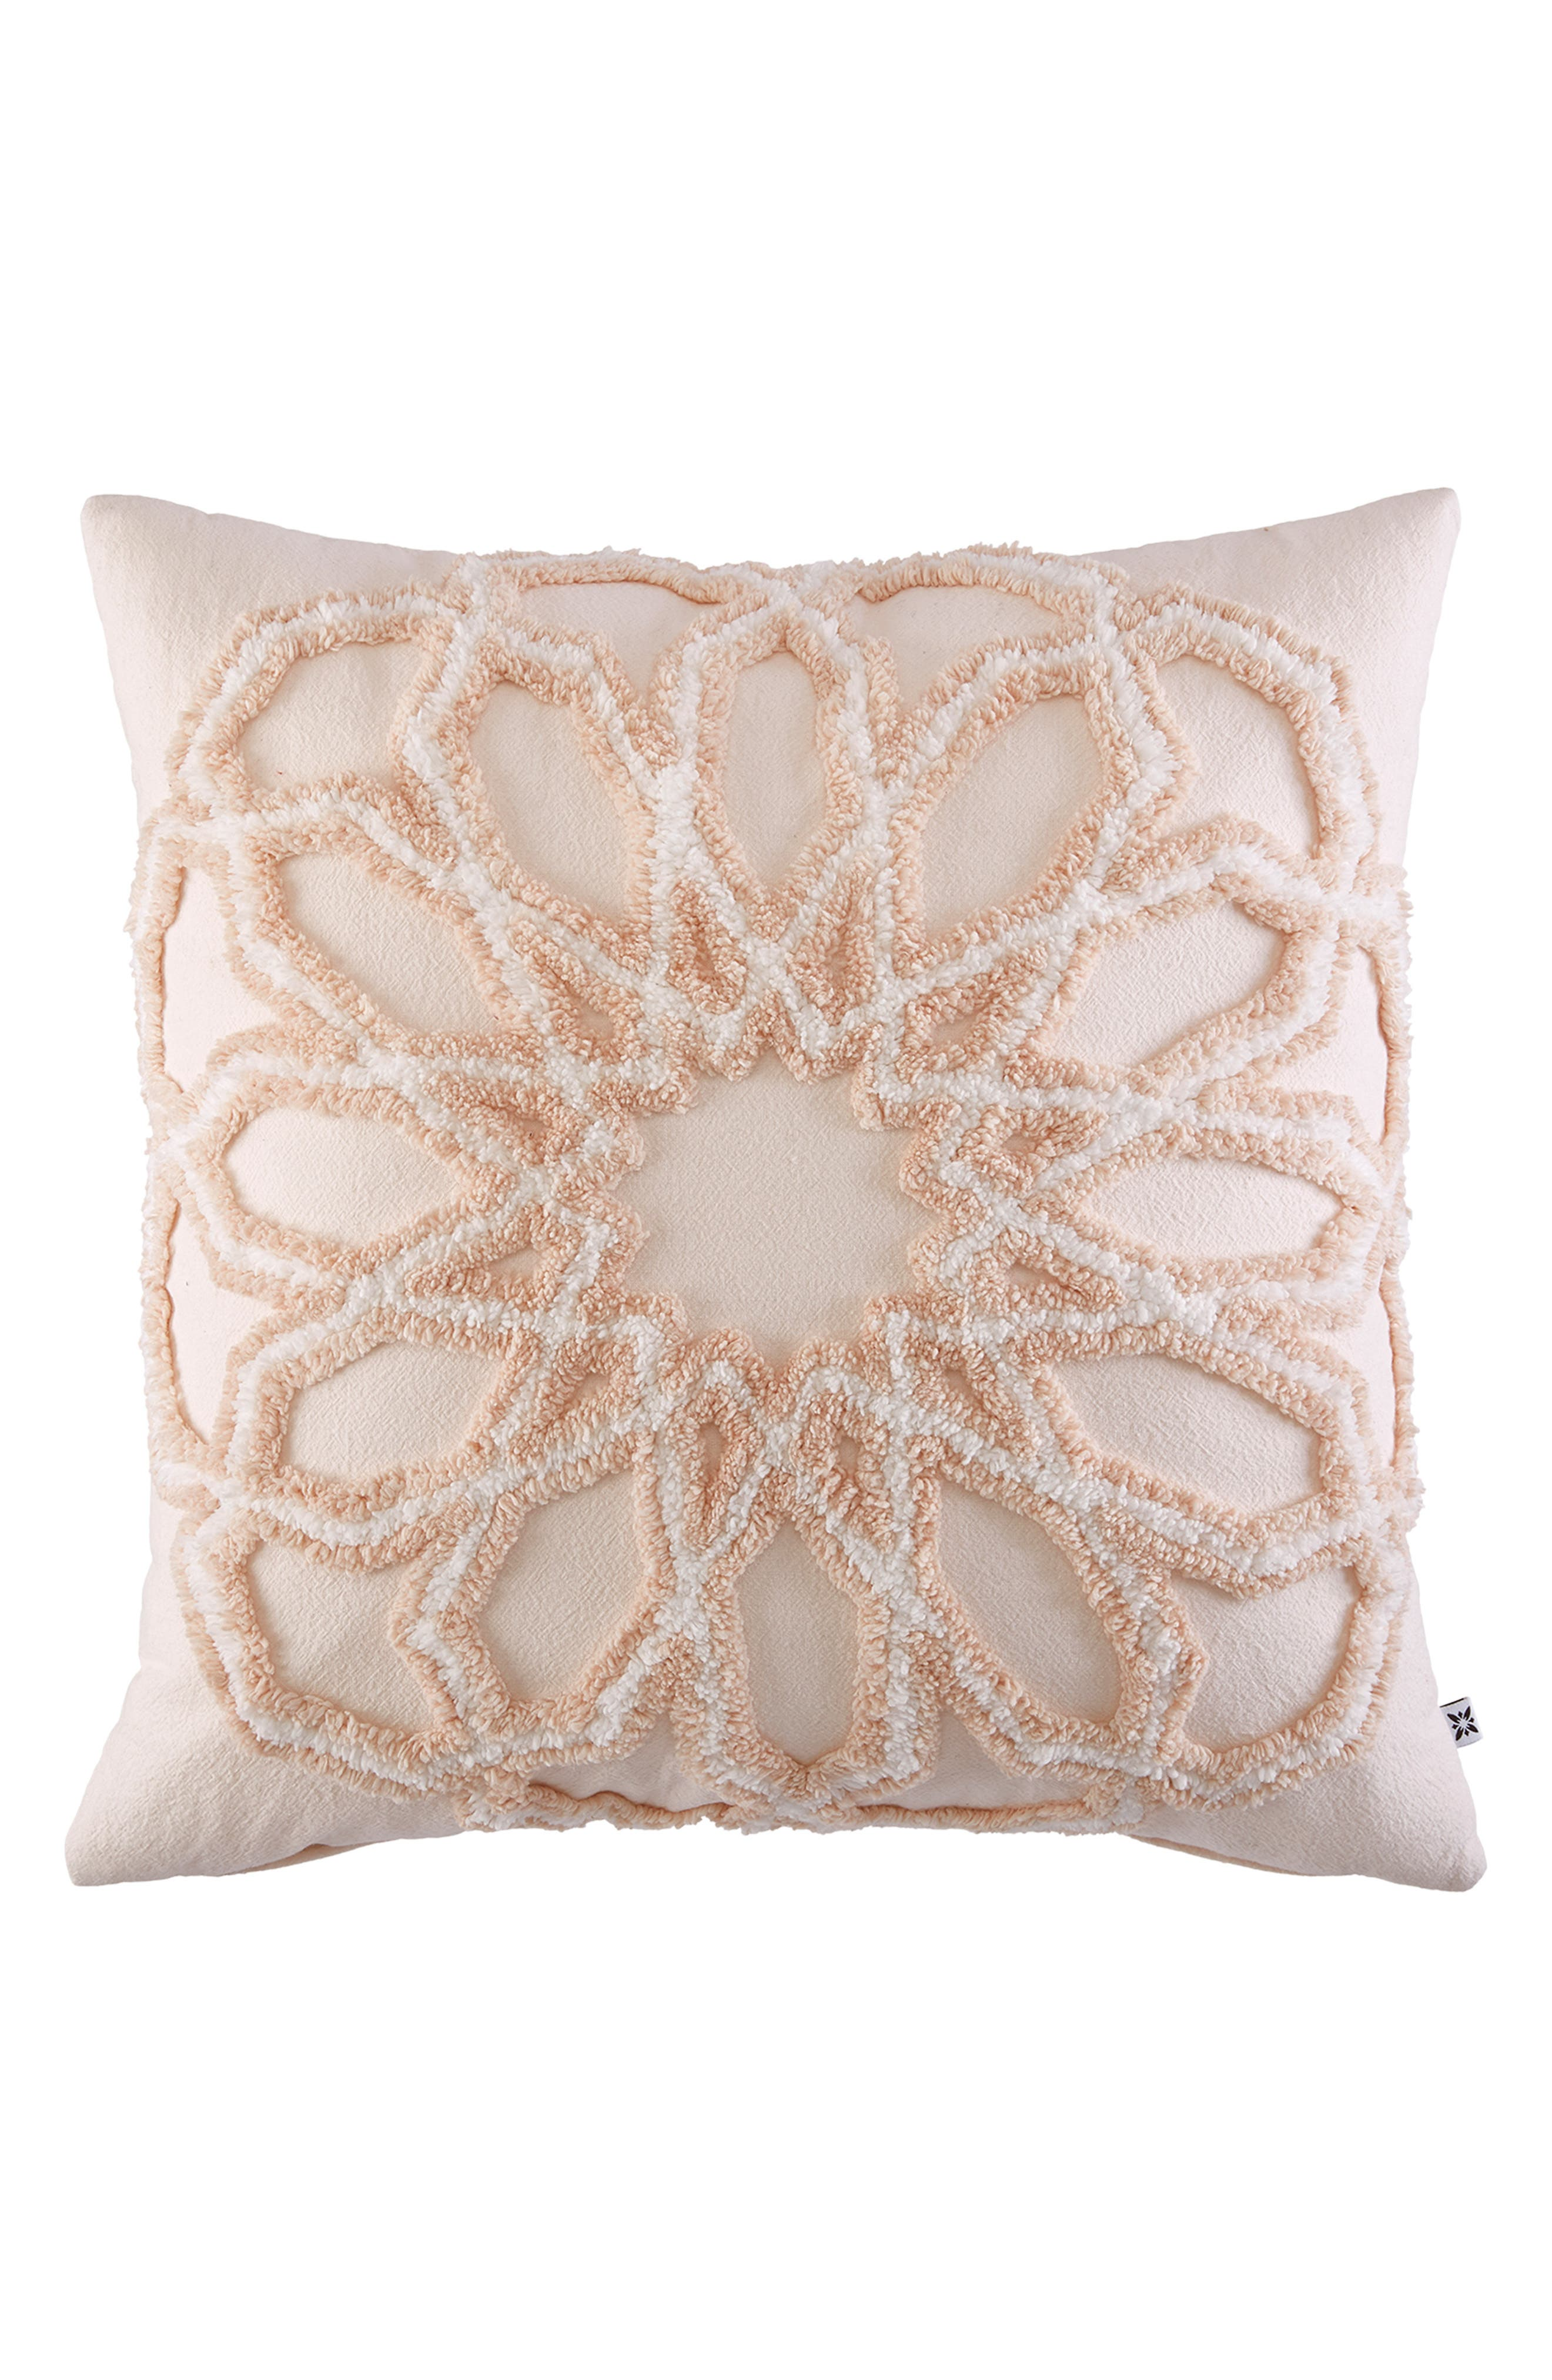 Marrakesh Tufted Accent Pillow,                         Main,                         color, 650